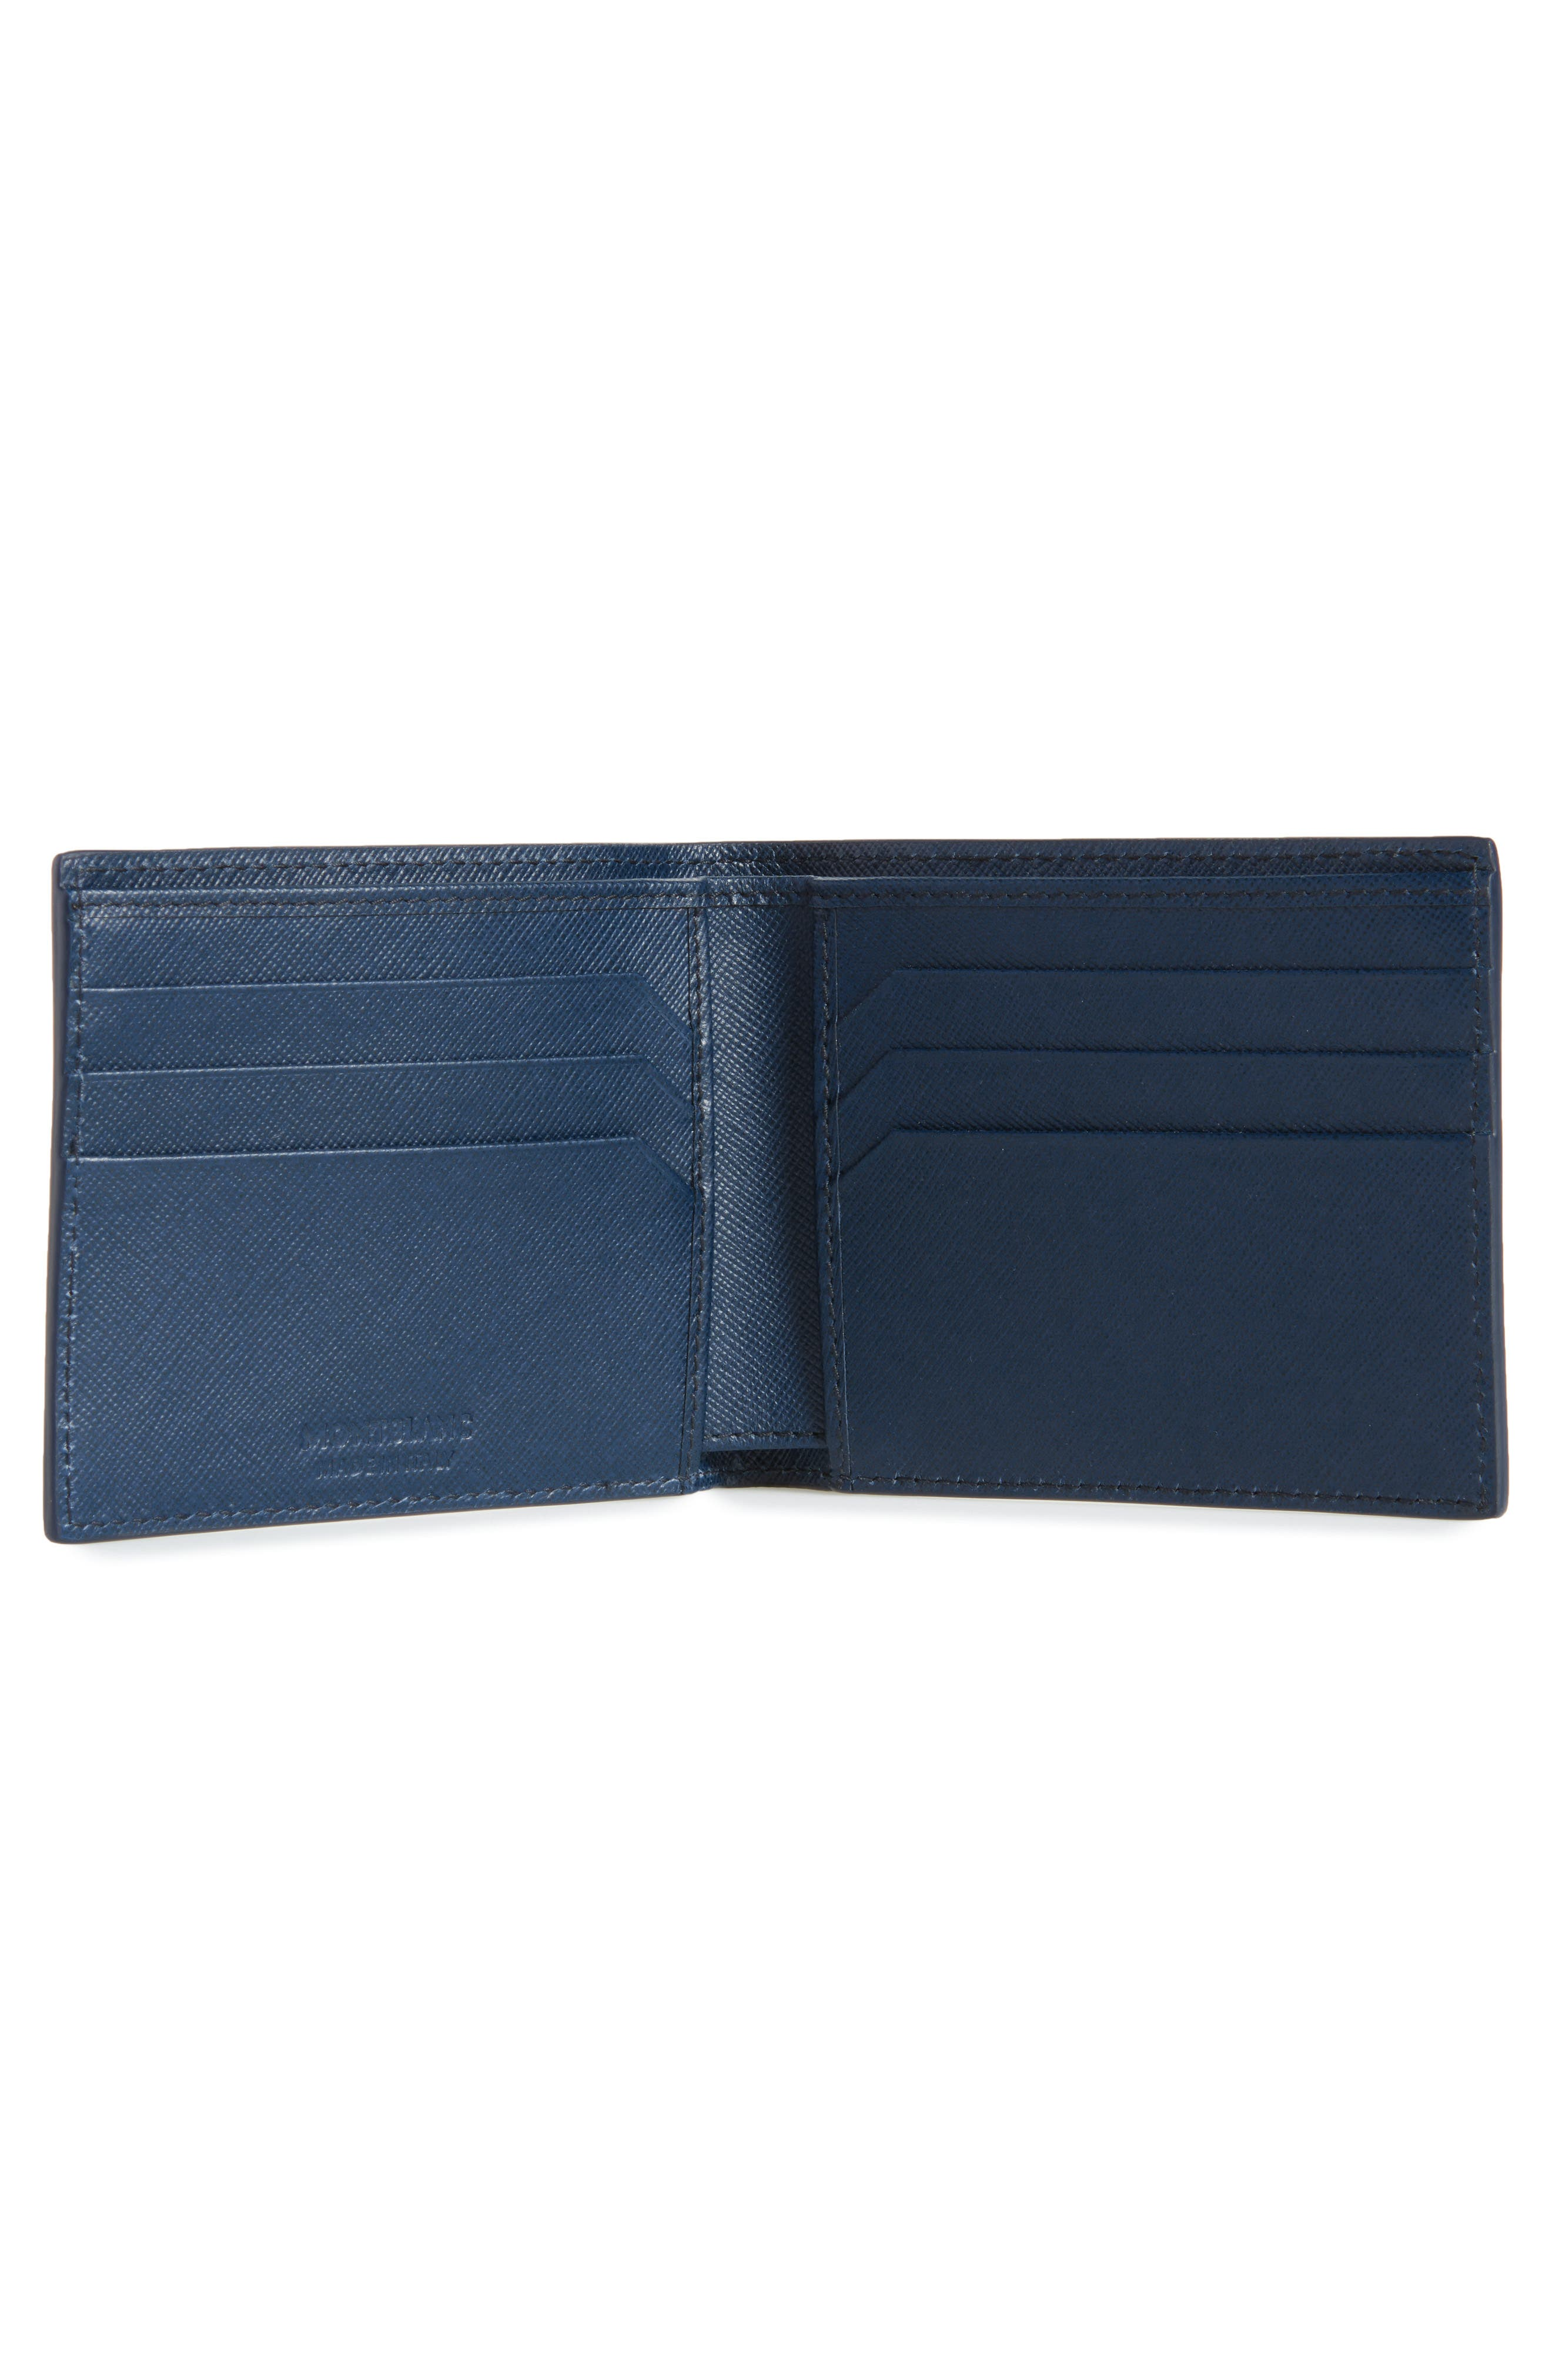 Sartorial Leather Bifold Wallet,                             Alternate thumbnail 4, color,